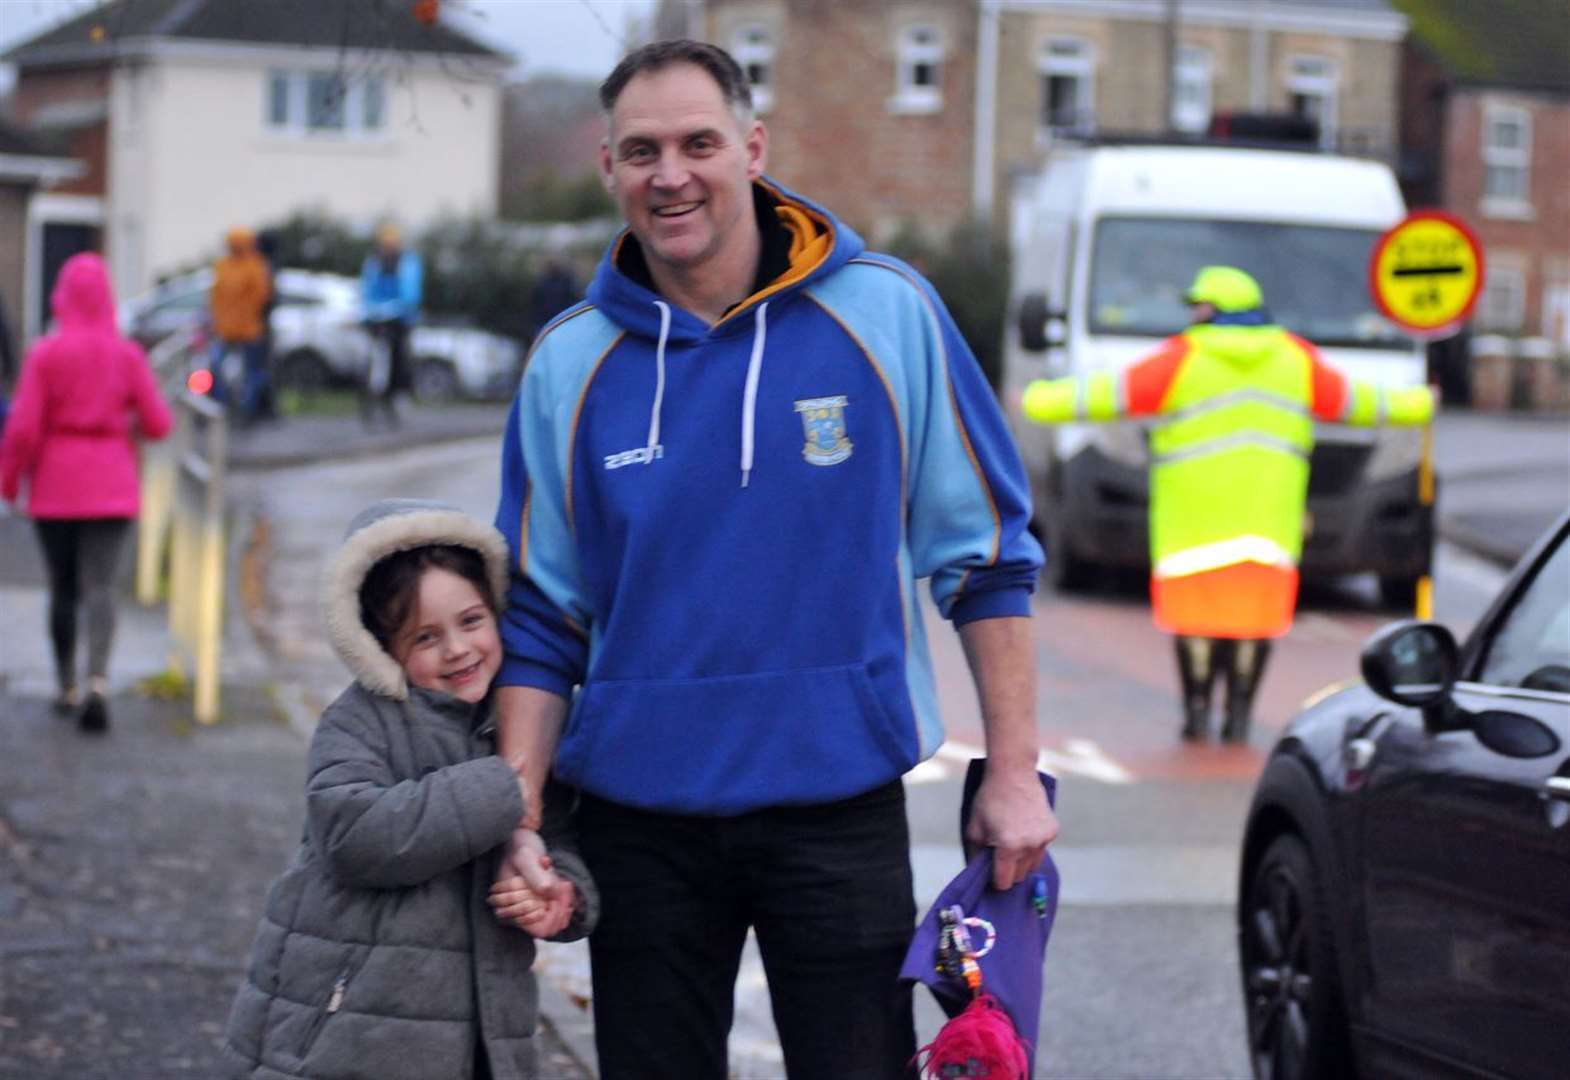 Dad calls time on abuse to school lollipop patrols